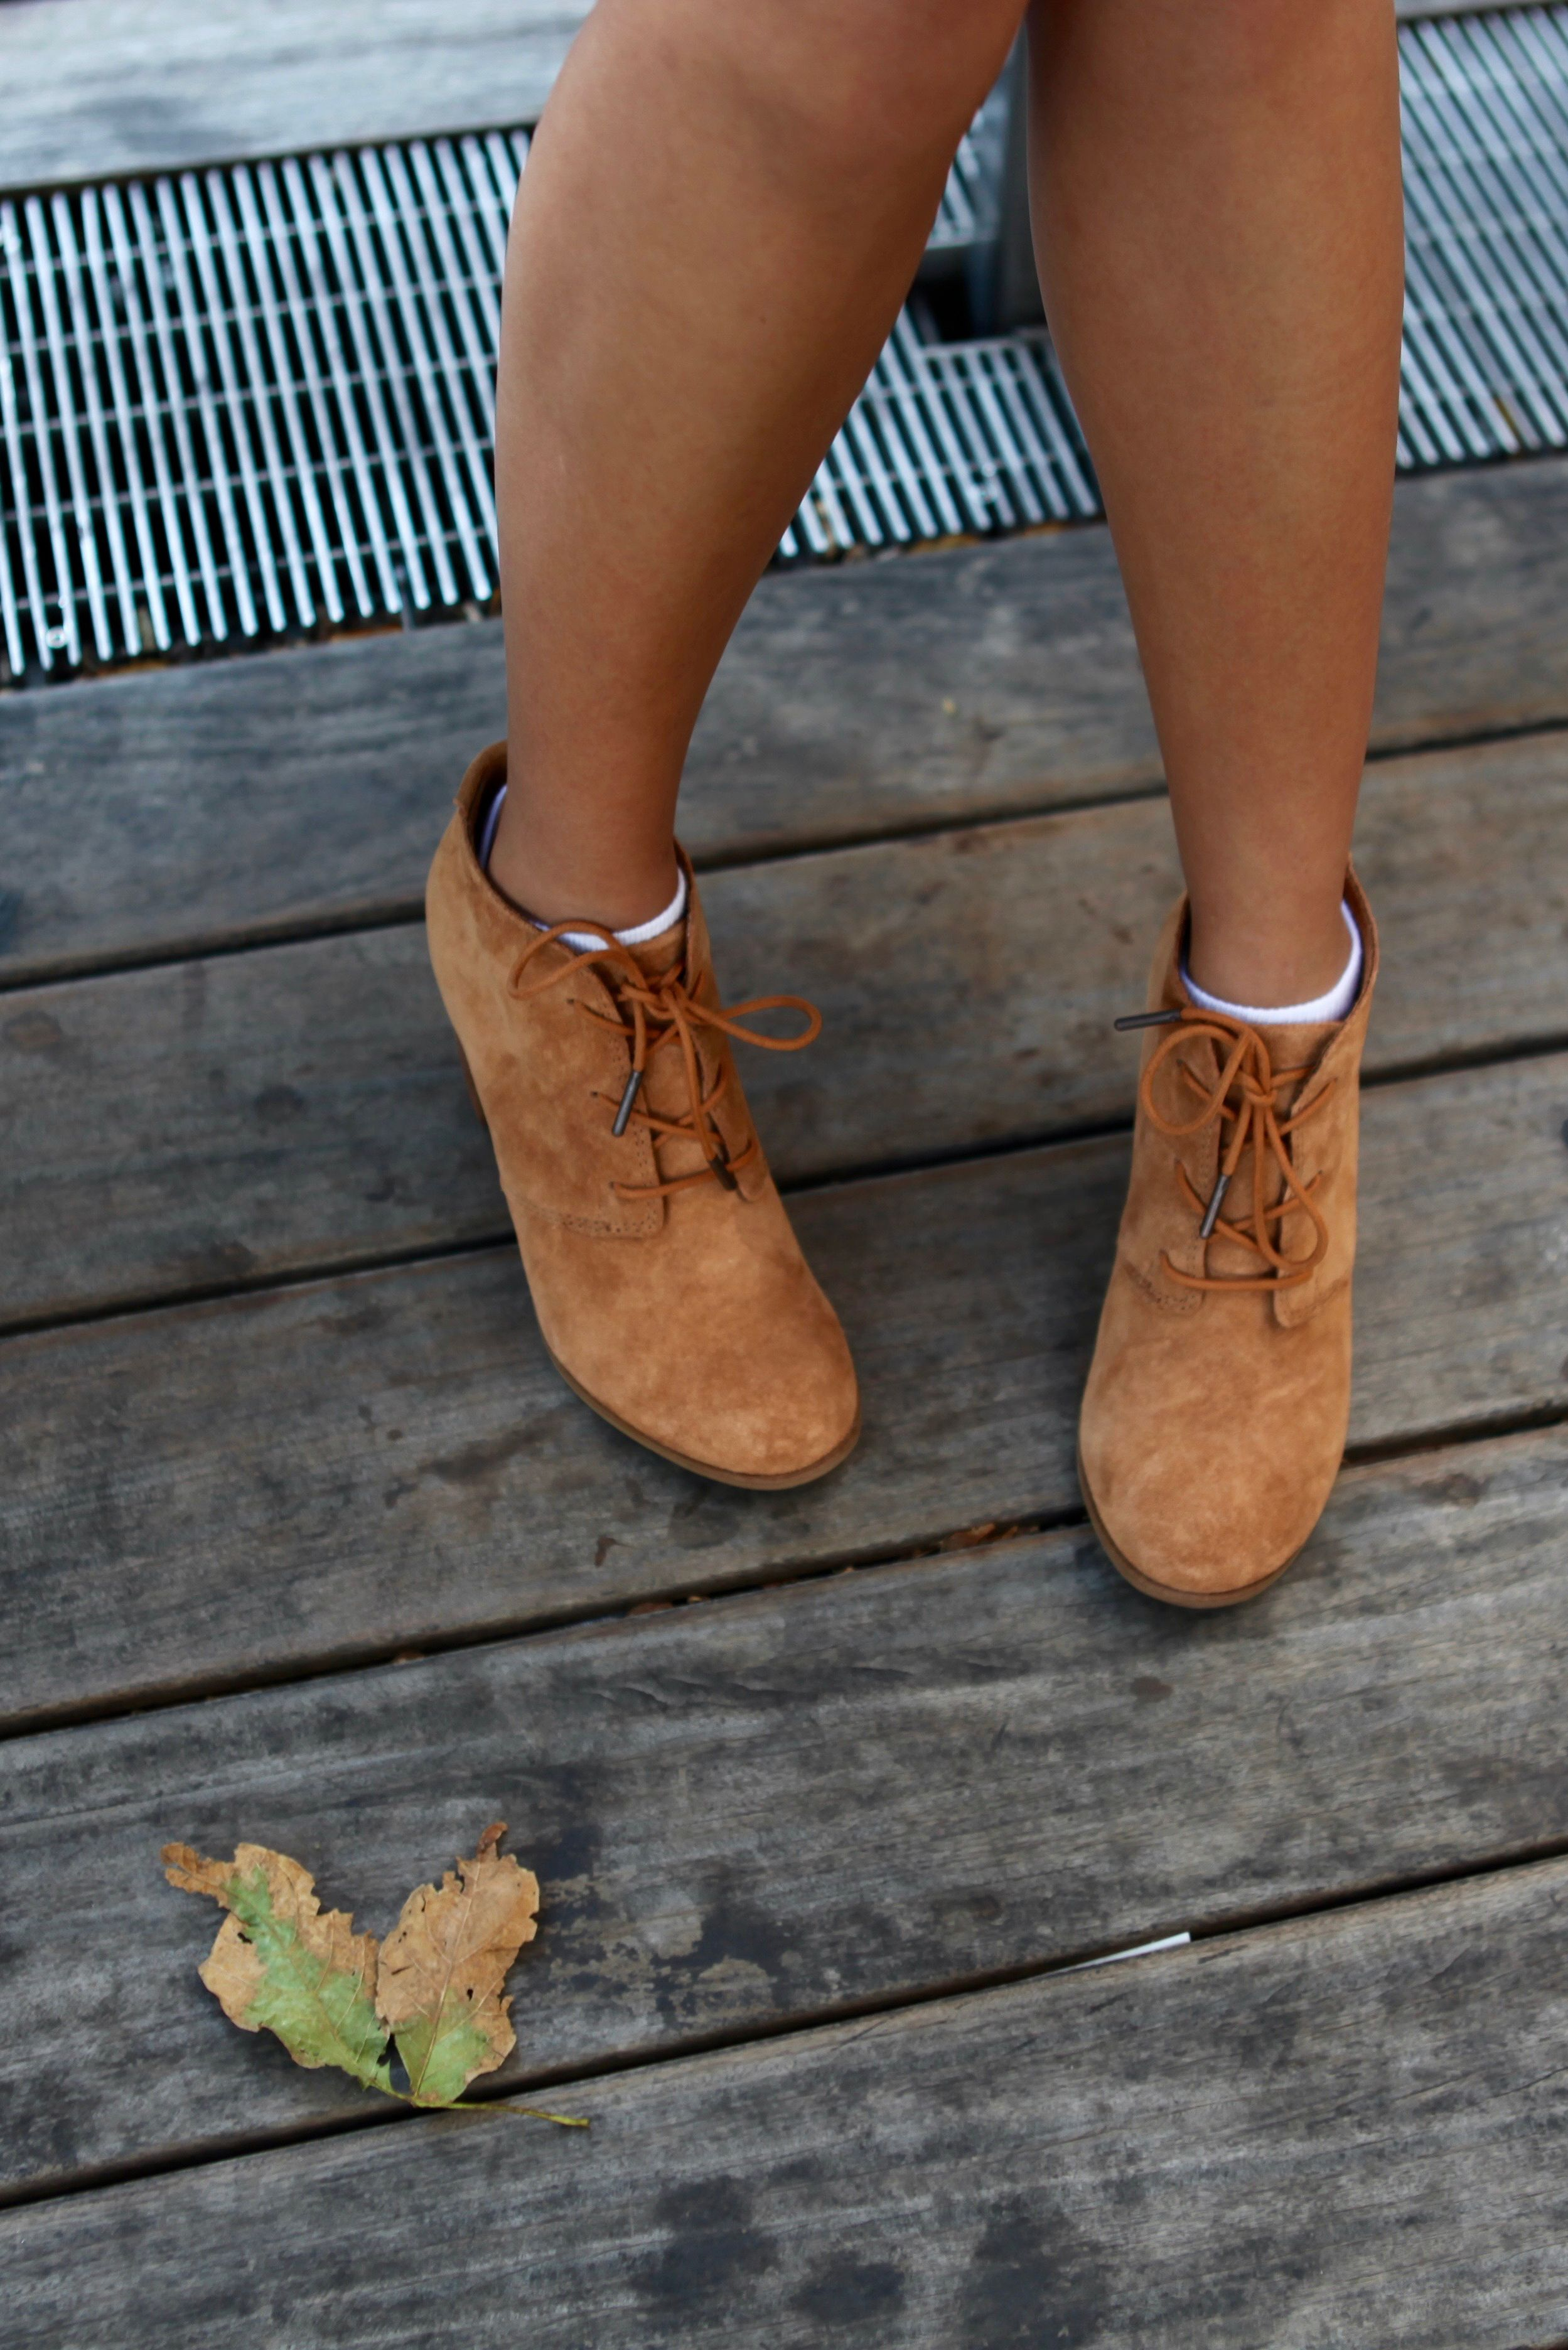 To acquire Wear You Would Lace-Up Booties? picture trends